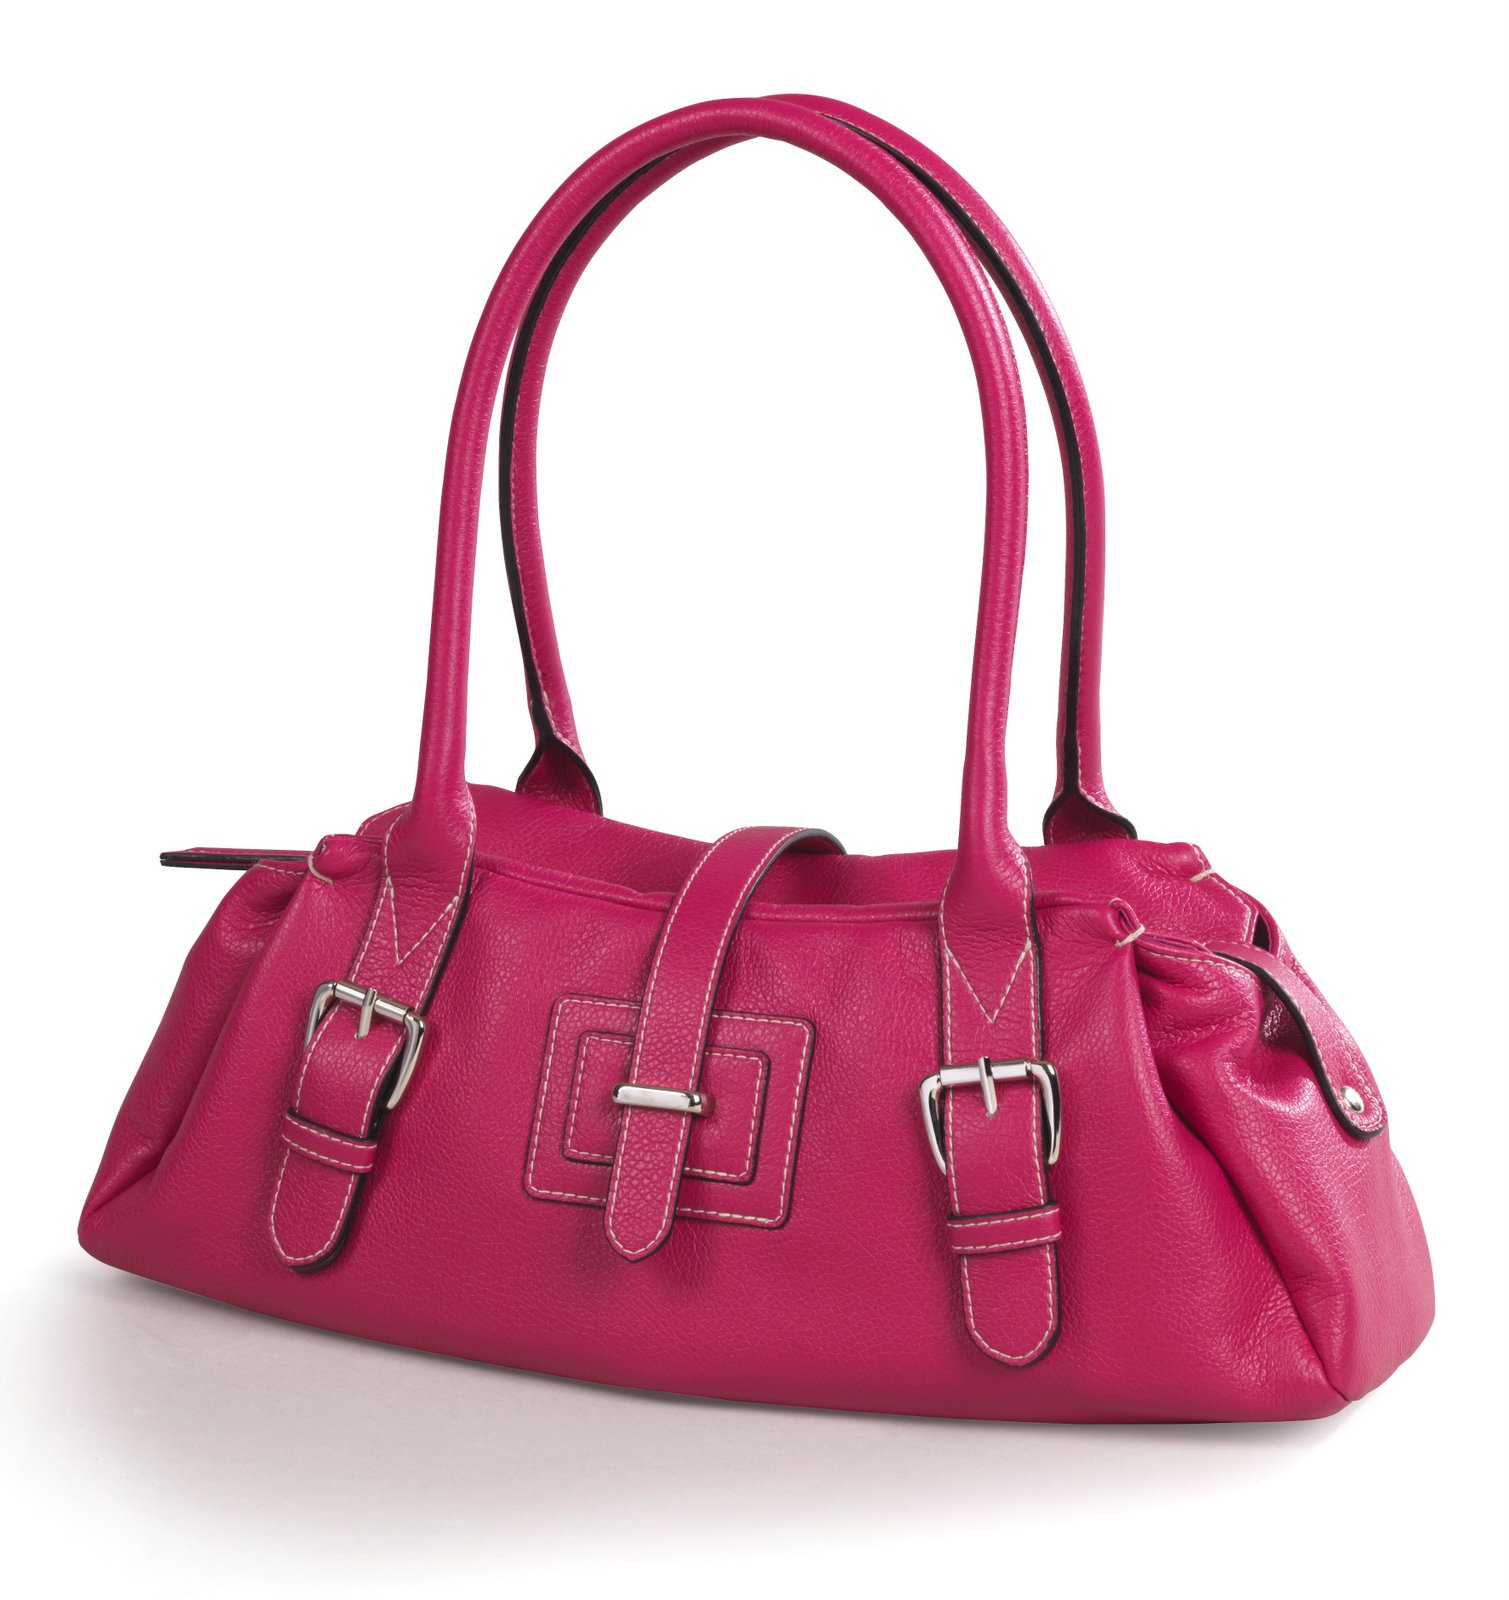 Click for Gorgeous Handbags!